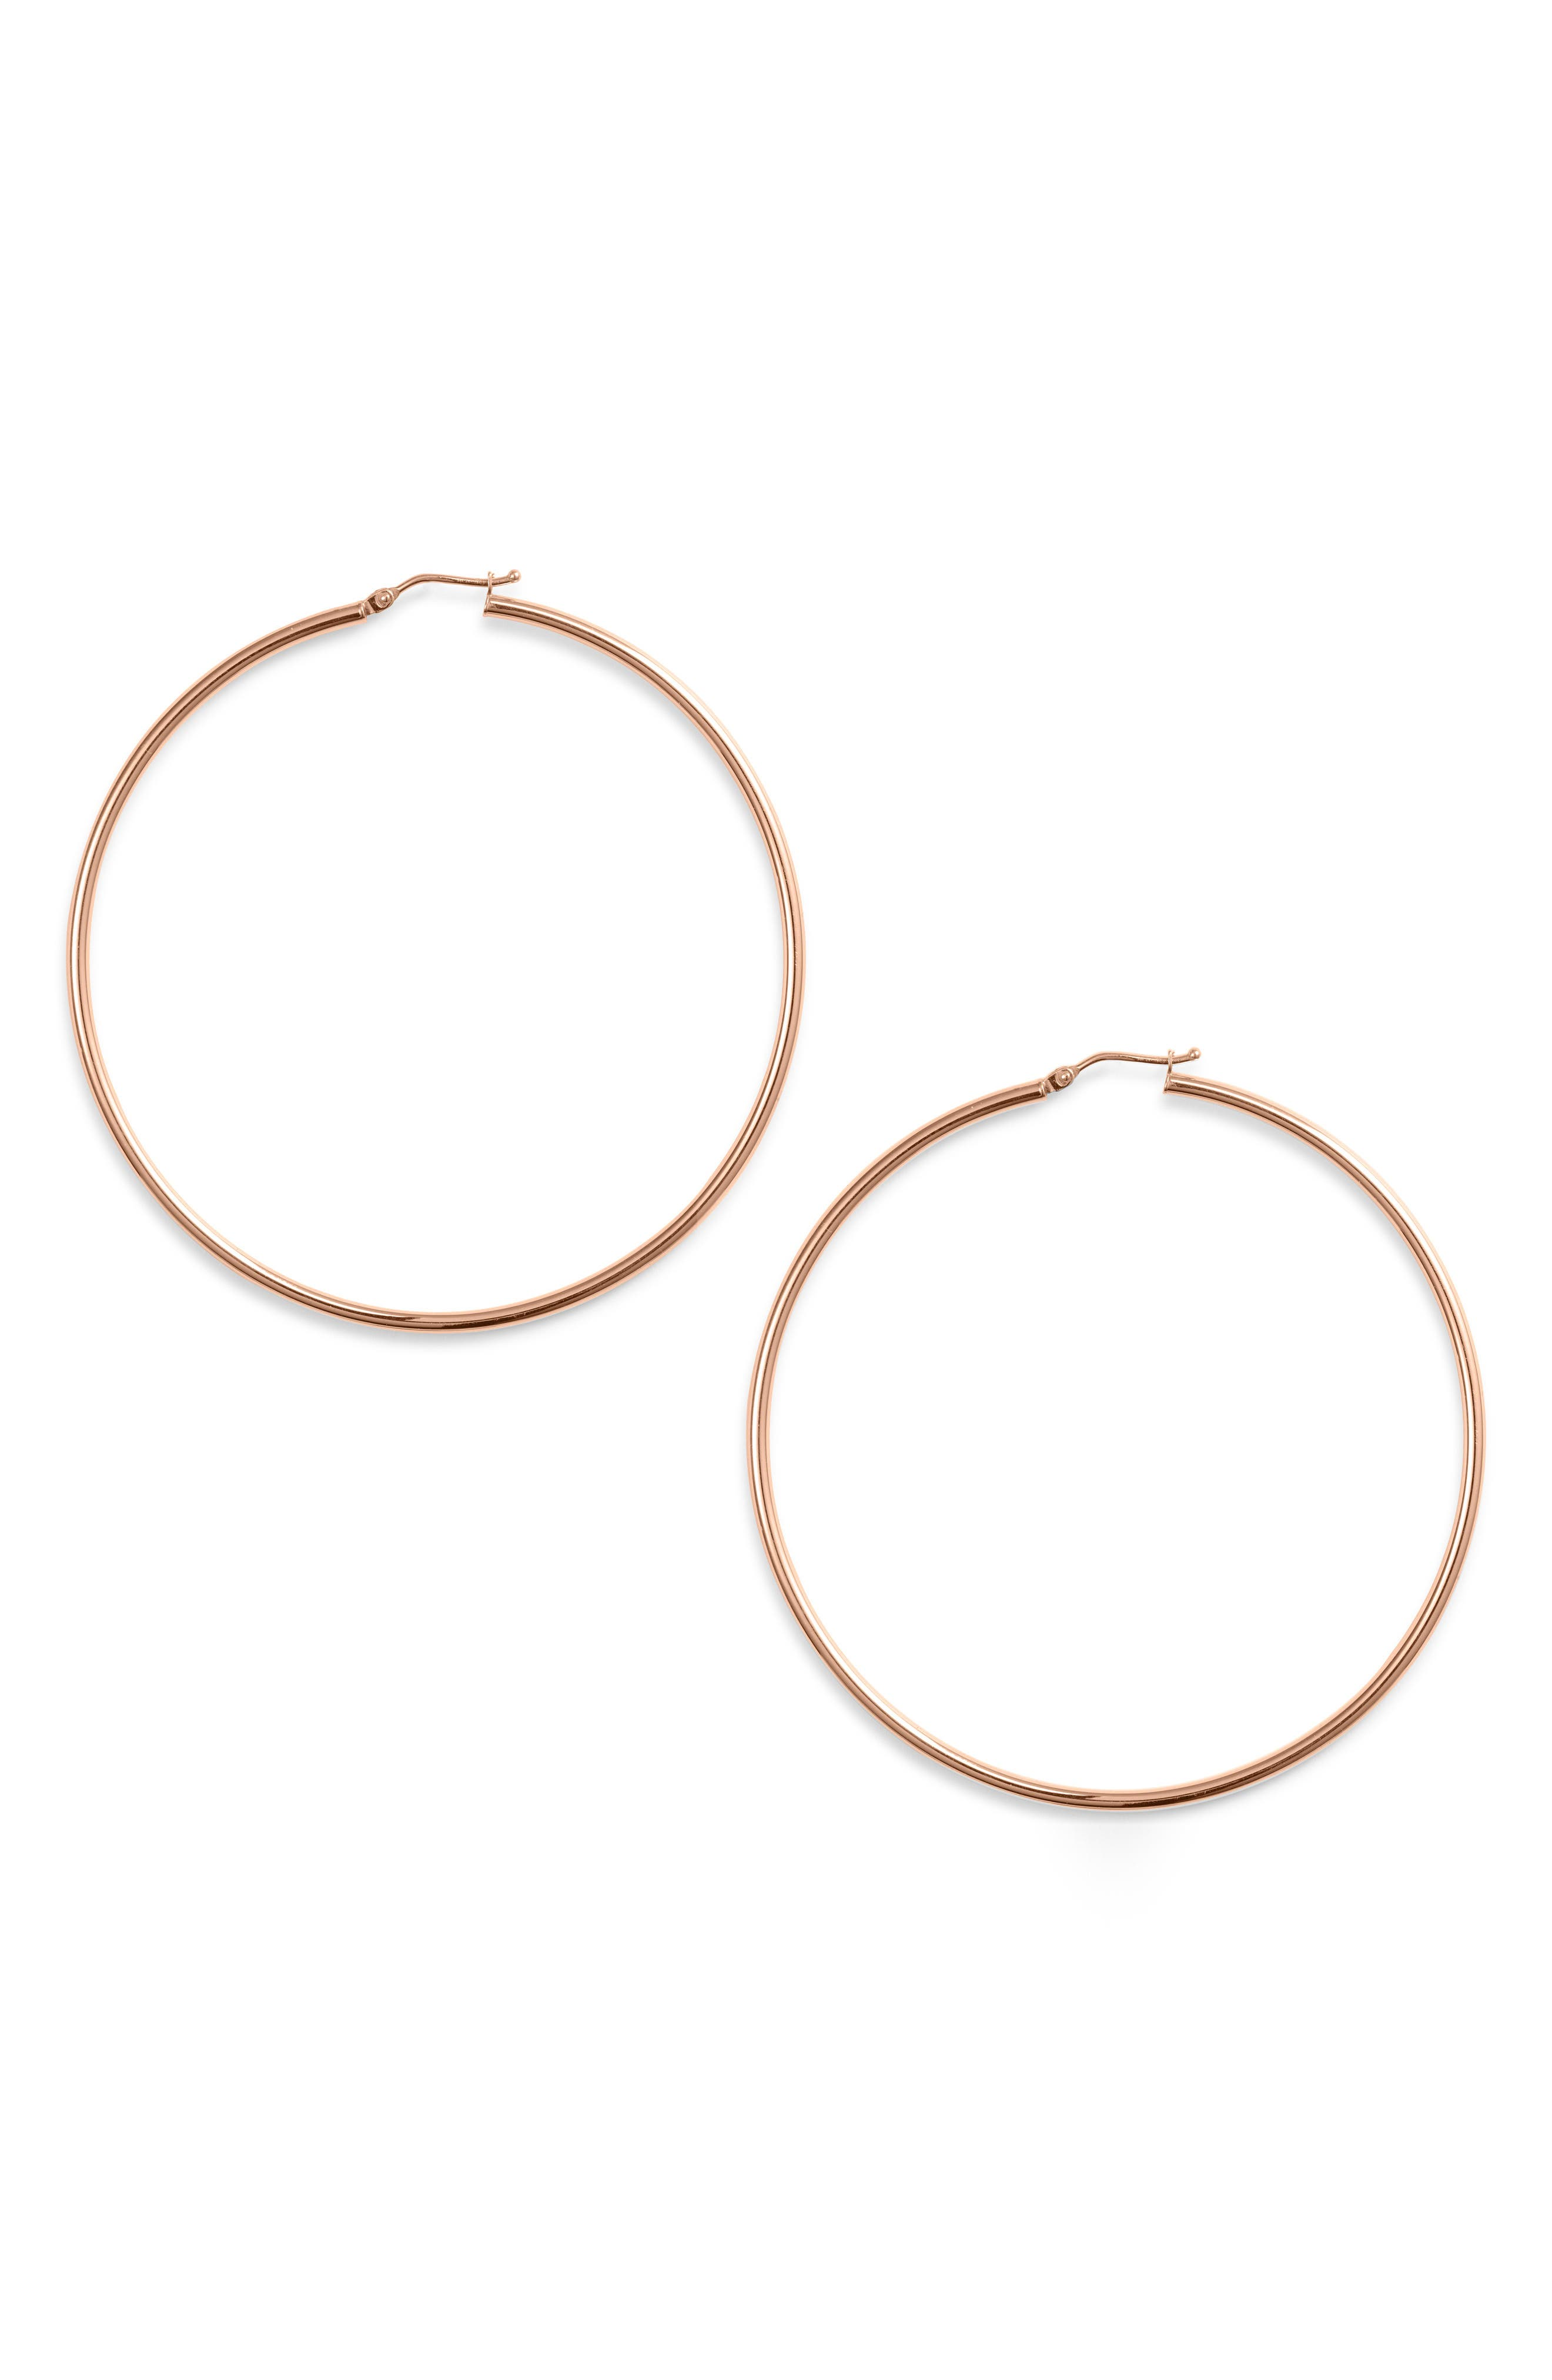 Live out your hoop dreams in a pair of handcrafted, 14-karat-gold earrings that show you know how to go big. Style Name: Bony Levy Extra Large Gold Hoop Earrings (Nordstrom Exclusive). Style Number: 5745574. Available in stores.